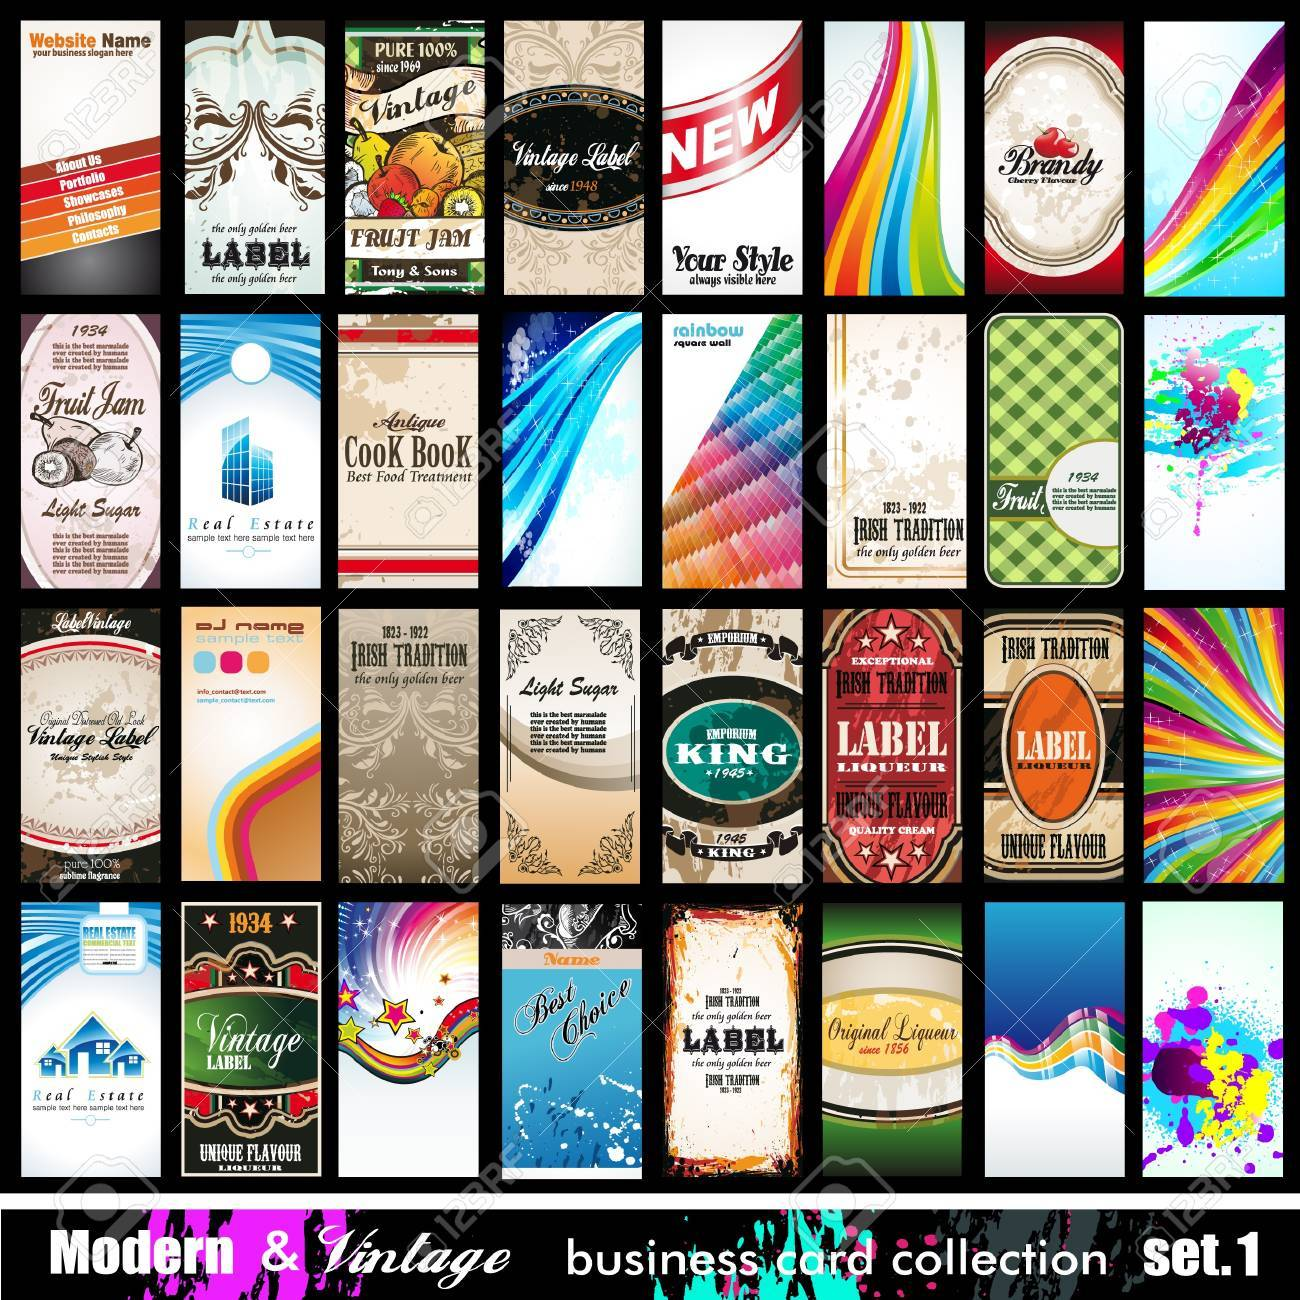 Modern   Vintage Business Card Collection - 32 quality backgrounds - Set 1 Stock Photo - 19264998